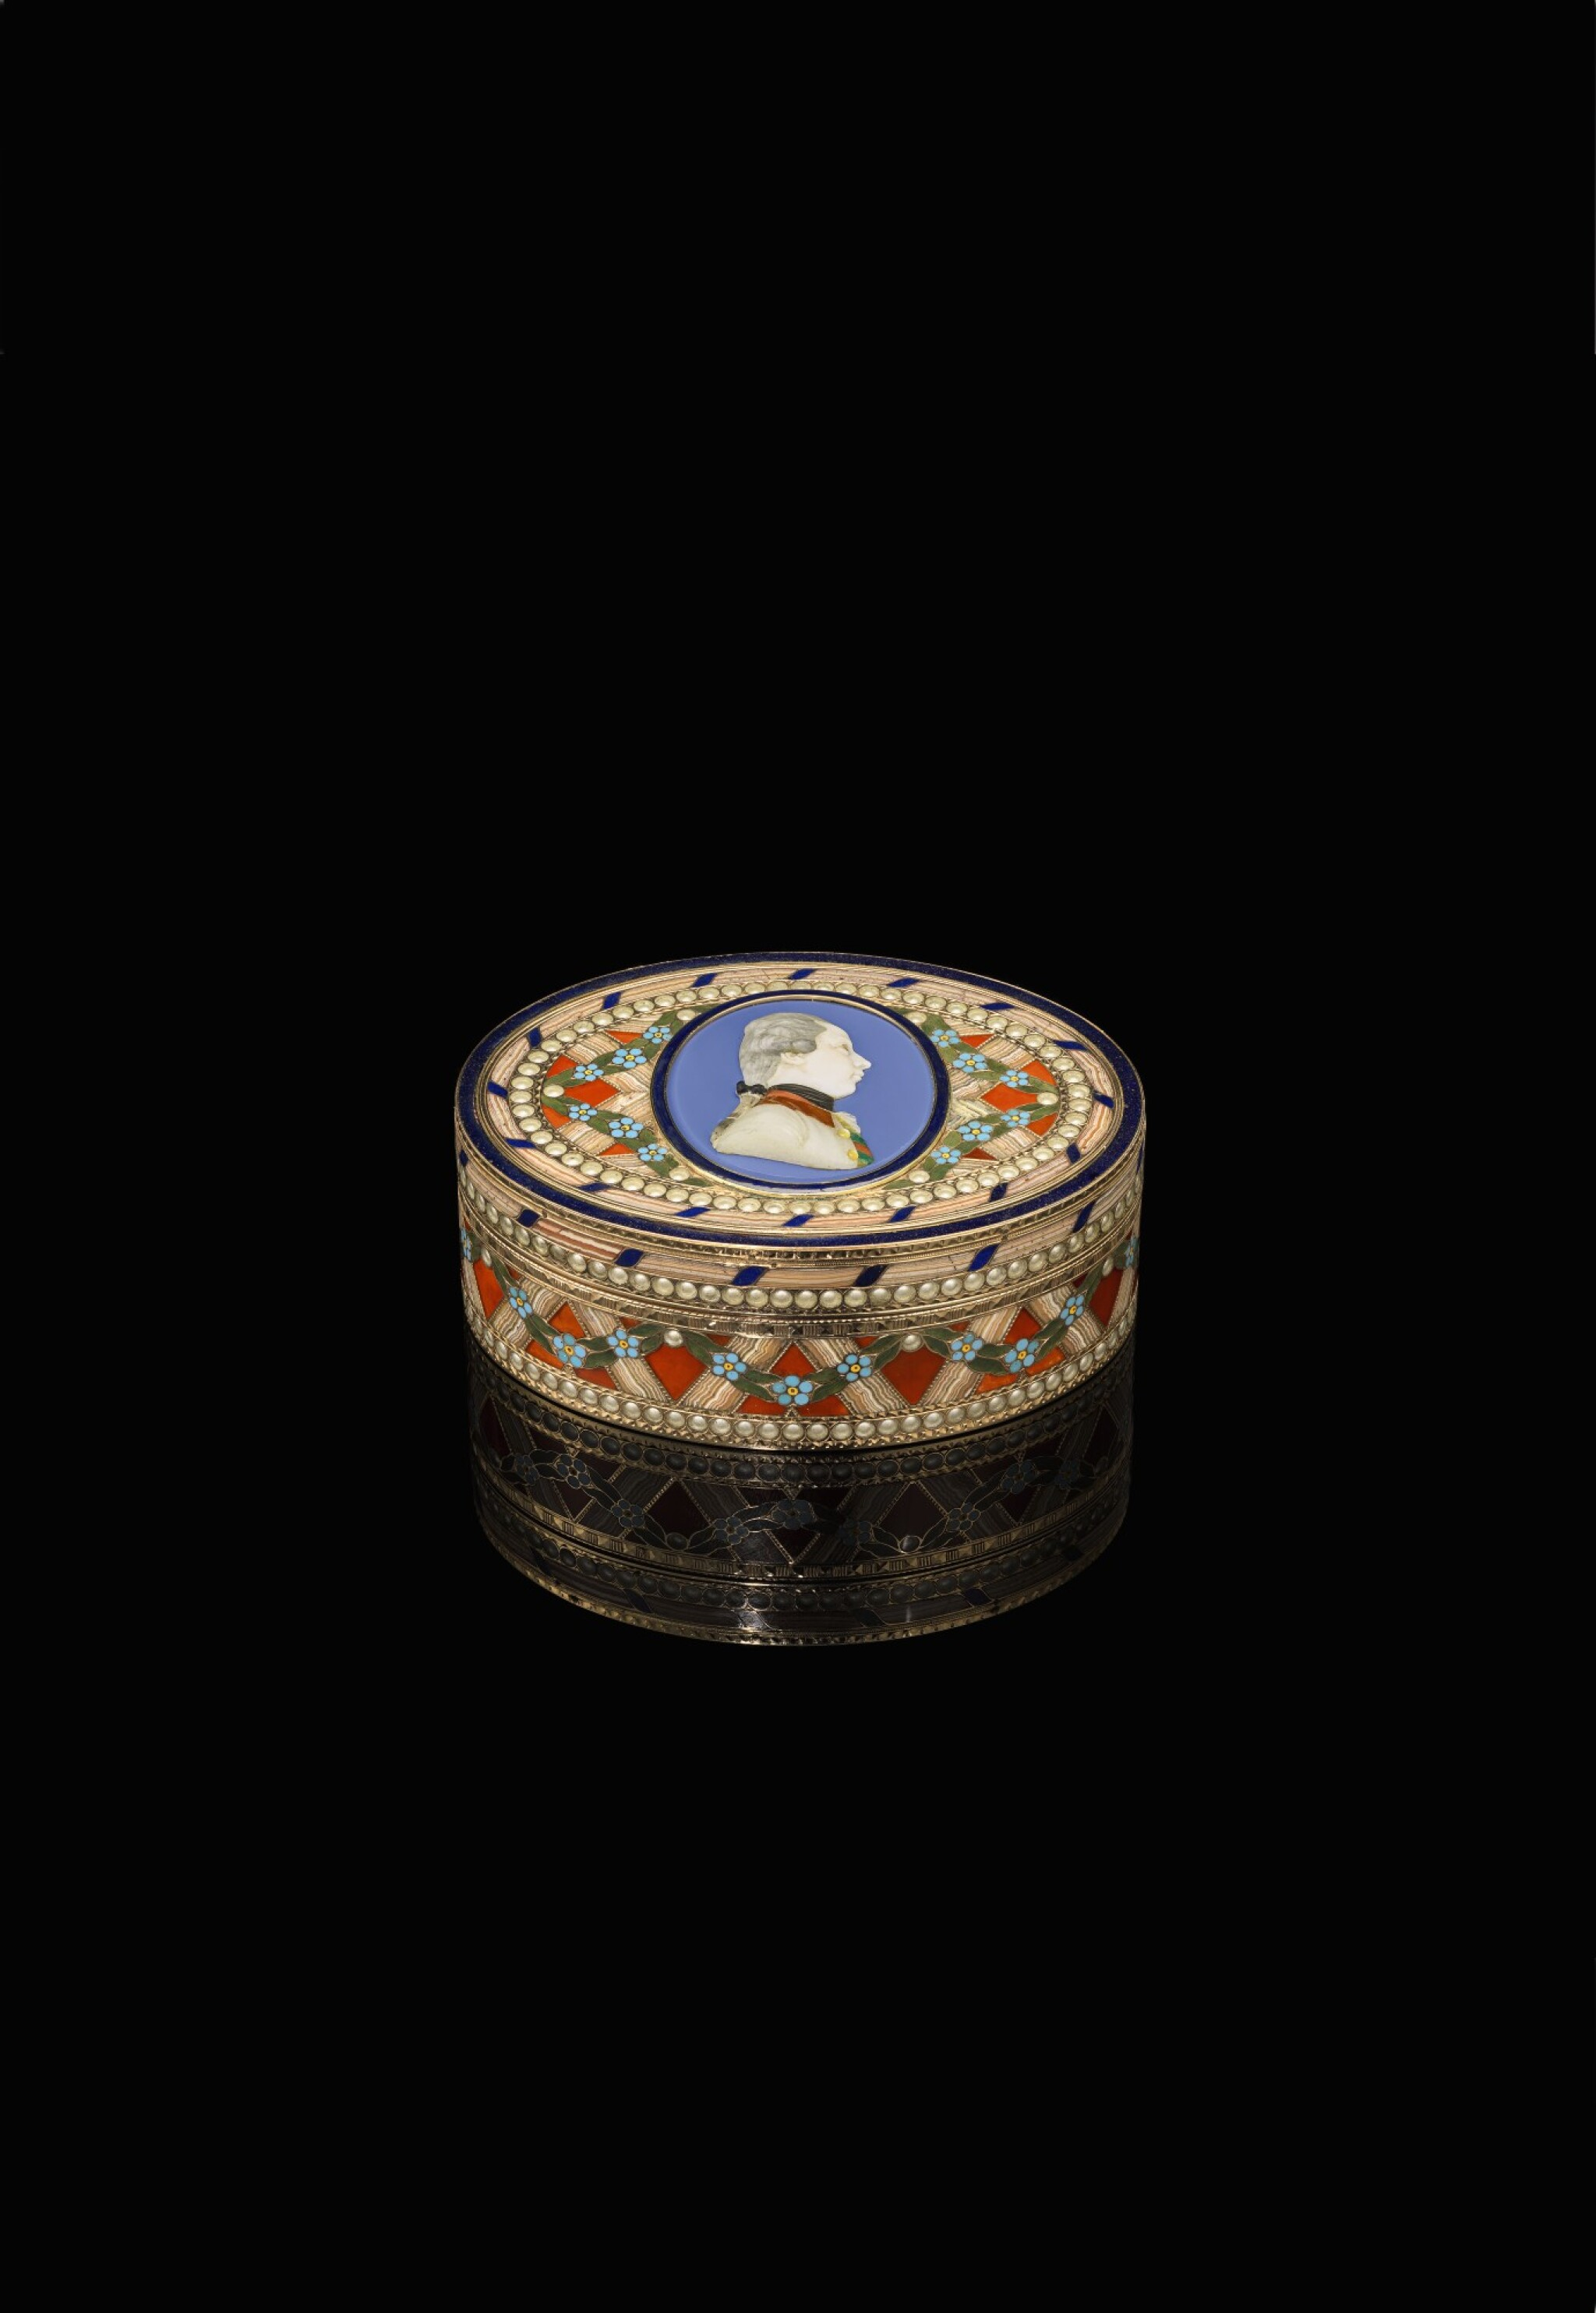 View full screen - View 1 of Lot 15. An Imperial gold, enamel and hardstone snuff box, Johann Christian Neuber, Dresden, circa 1775.